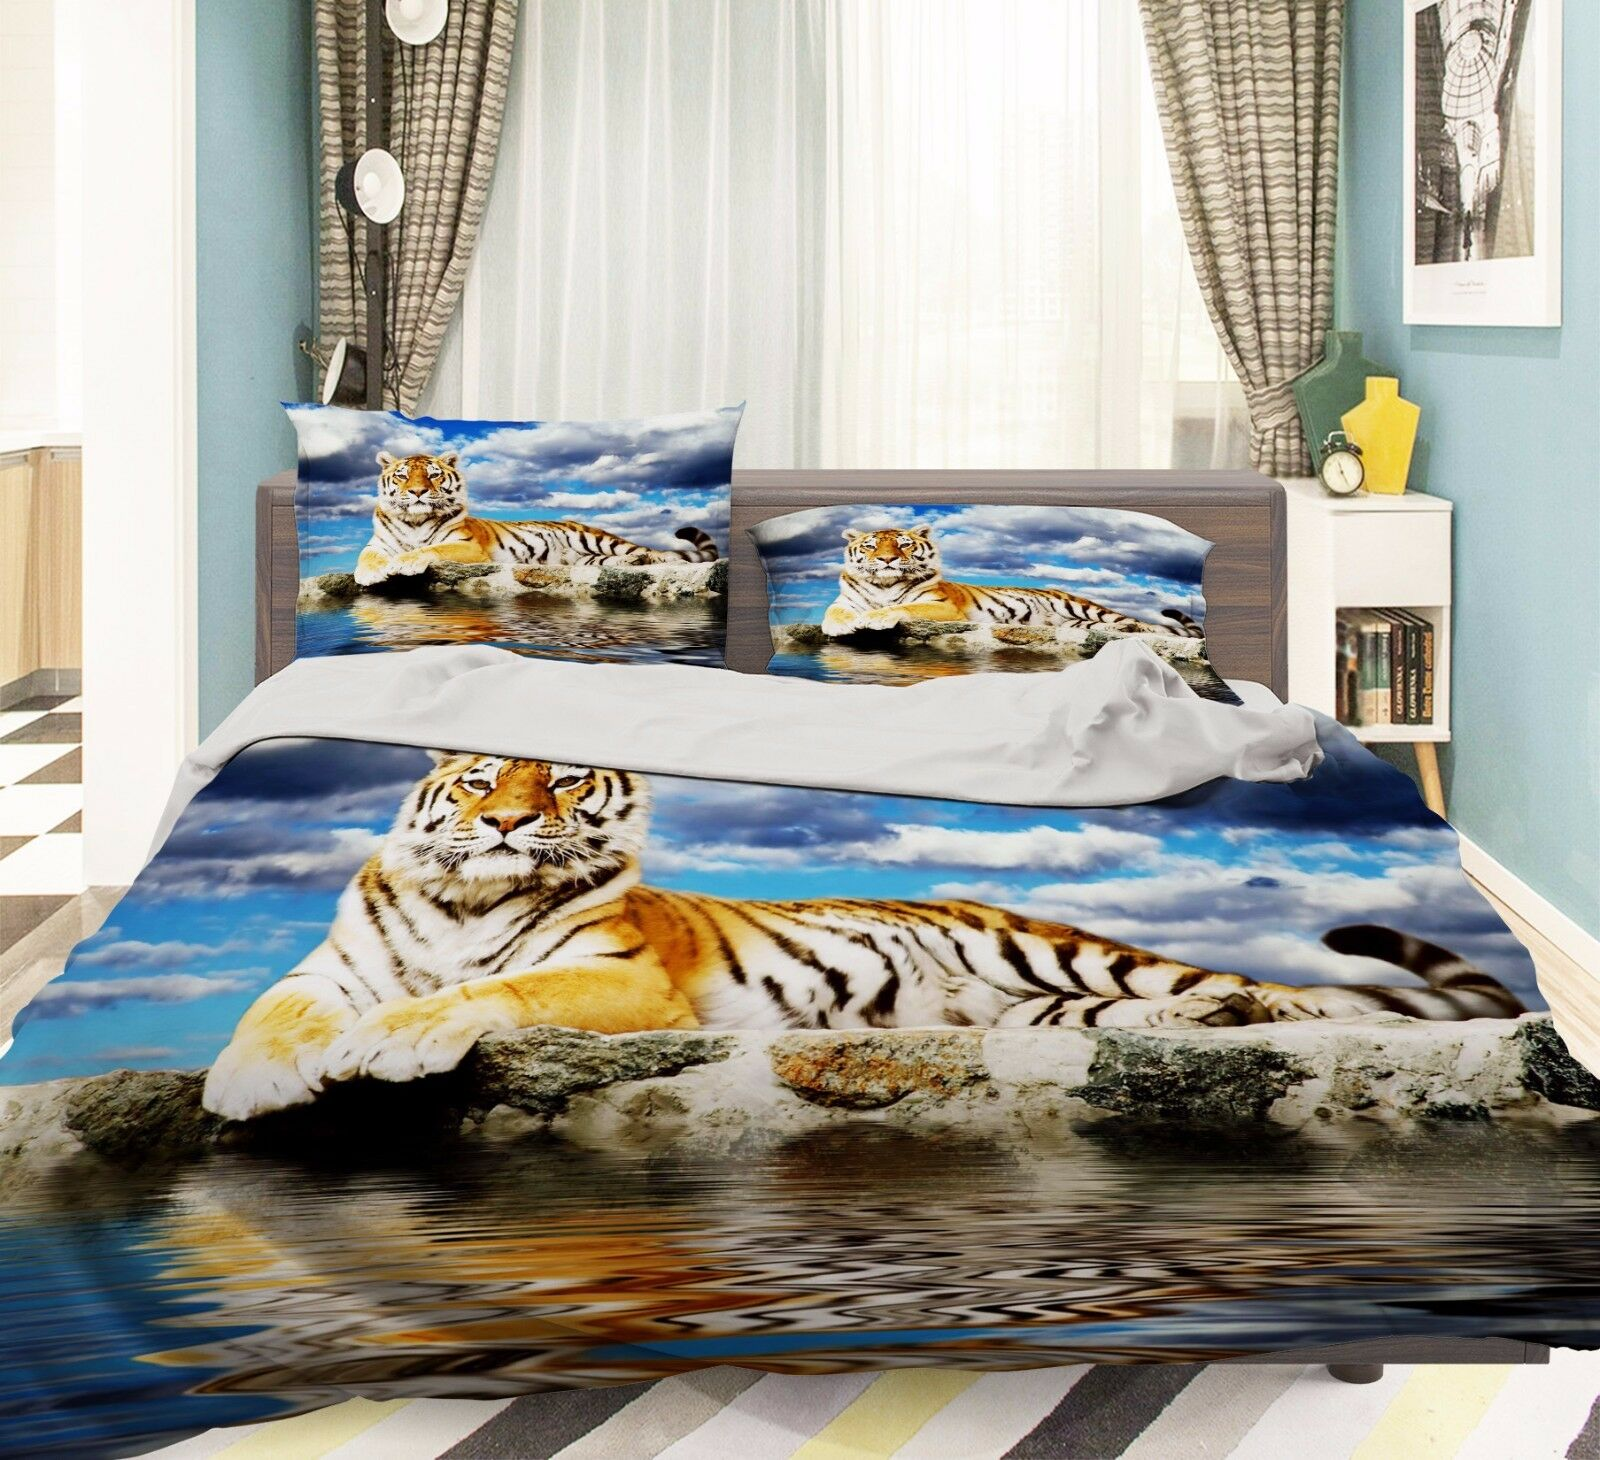 3D Tiger Animal 736 Bed Pillowcases Quilt Duvet Cover Set Single Queen UK Carly